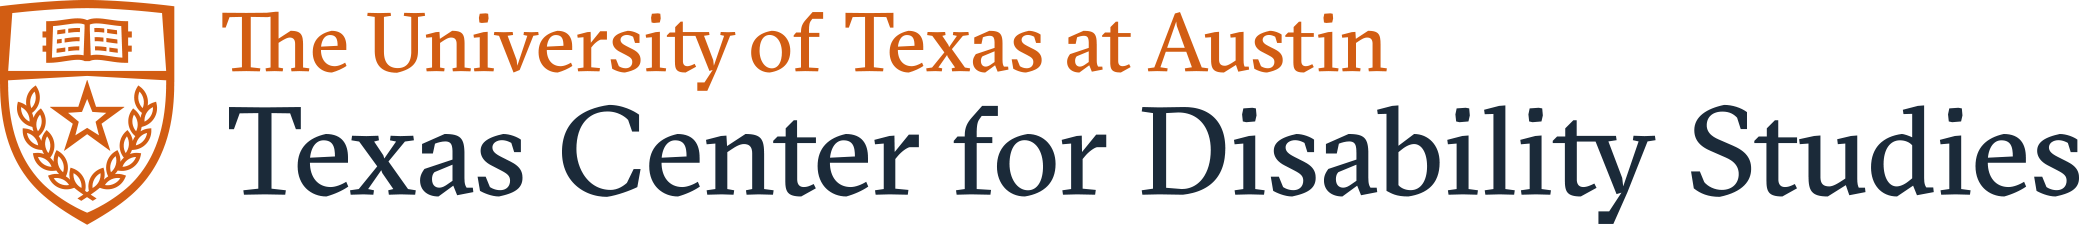 Texas Center for Disabilities logo